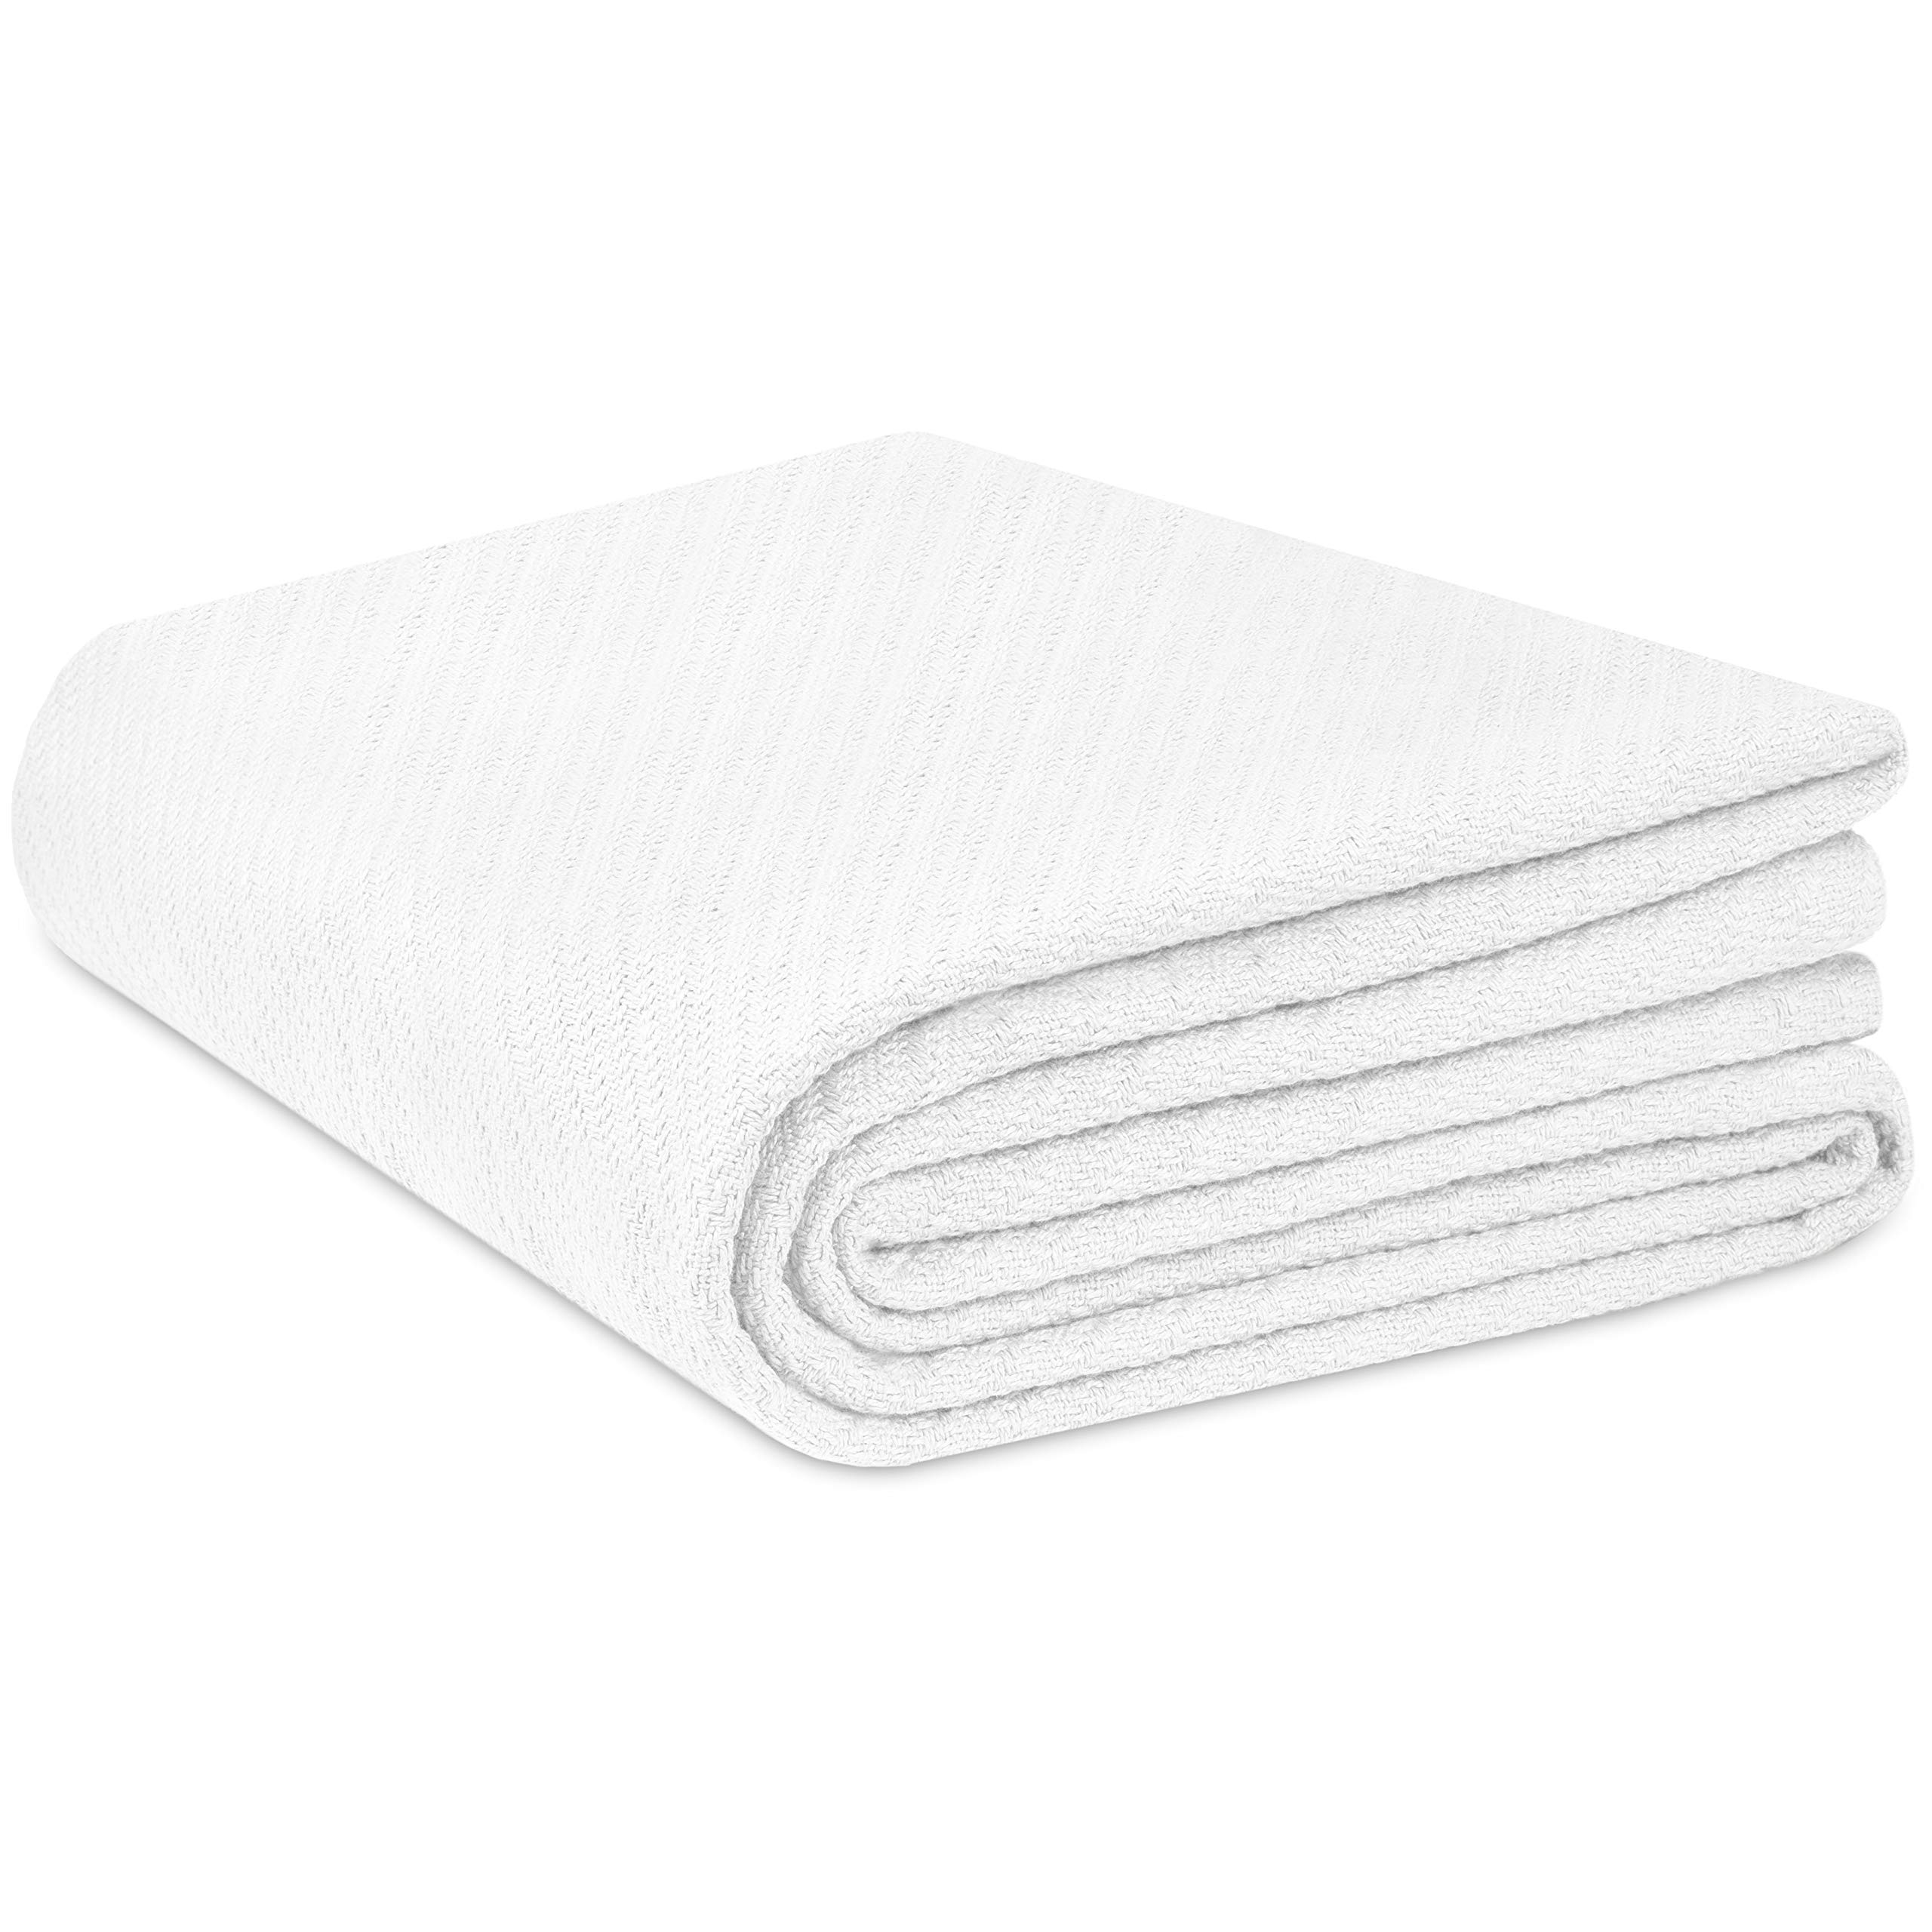 Cotton Craft - 100% Soft Premium Cotton Thermal Blanket - King White - Snuggle in These Super Soft Cozy Cotton Blankets - Perfect for Layering Any Bed - Provides Comfort and Warmth for Years